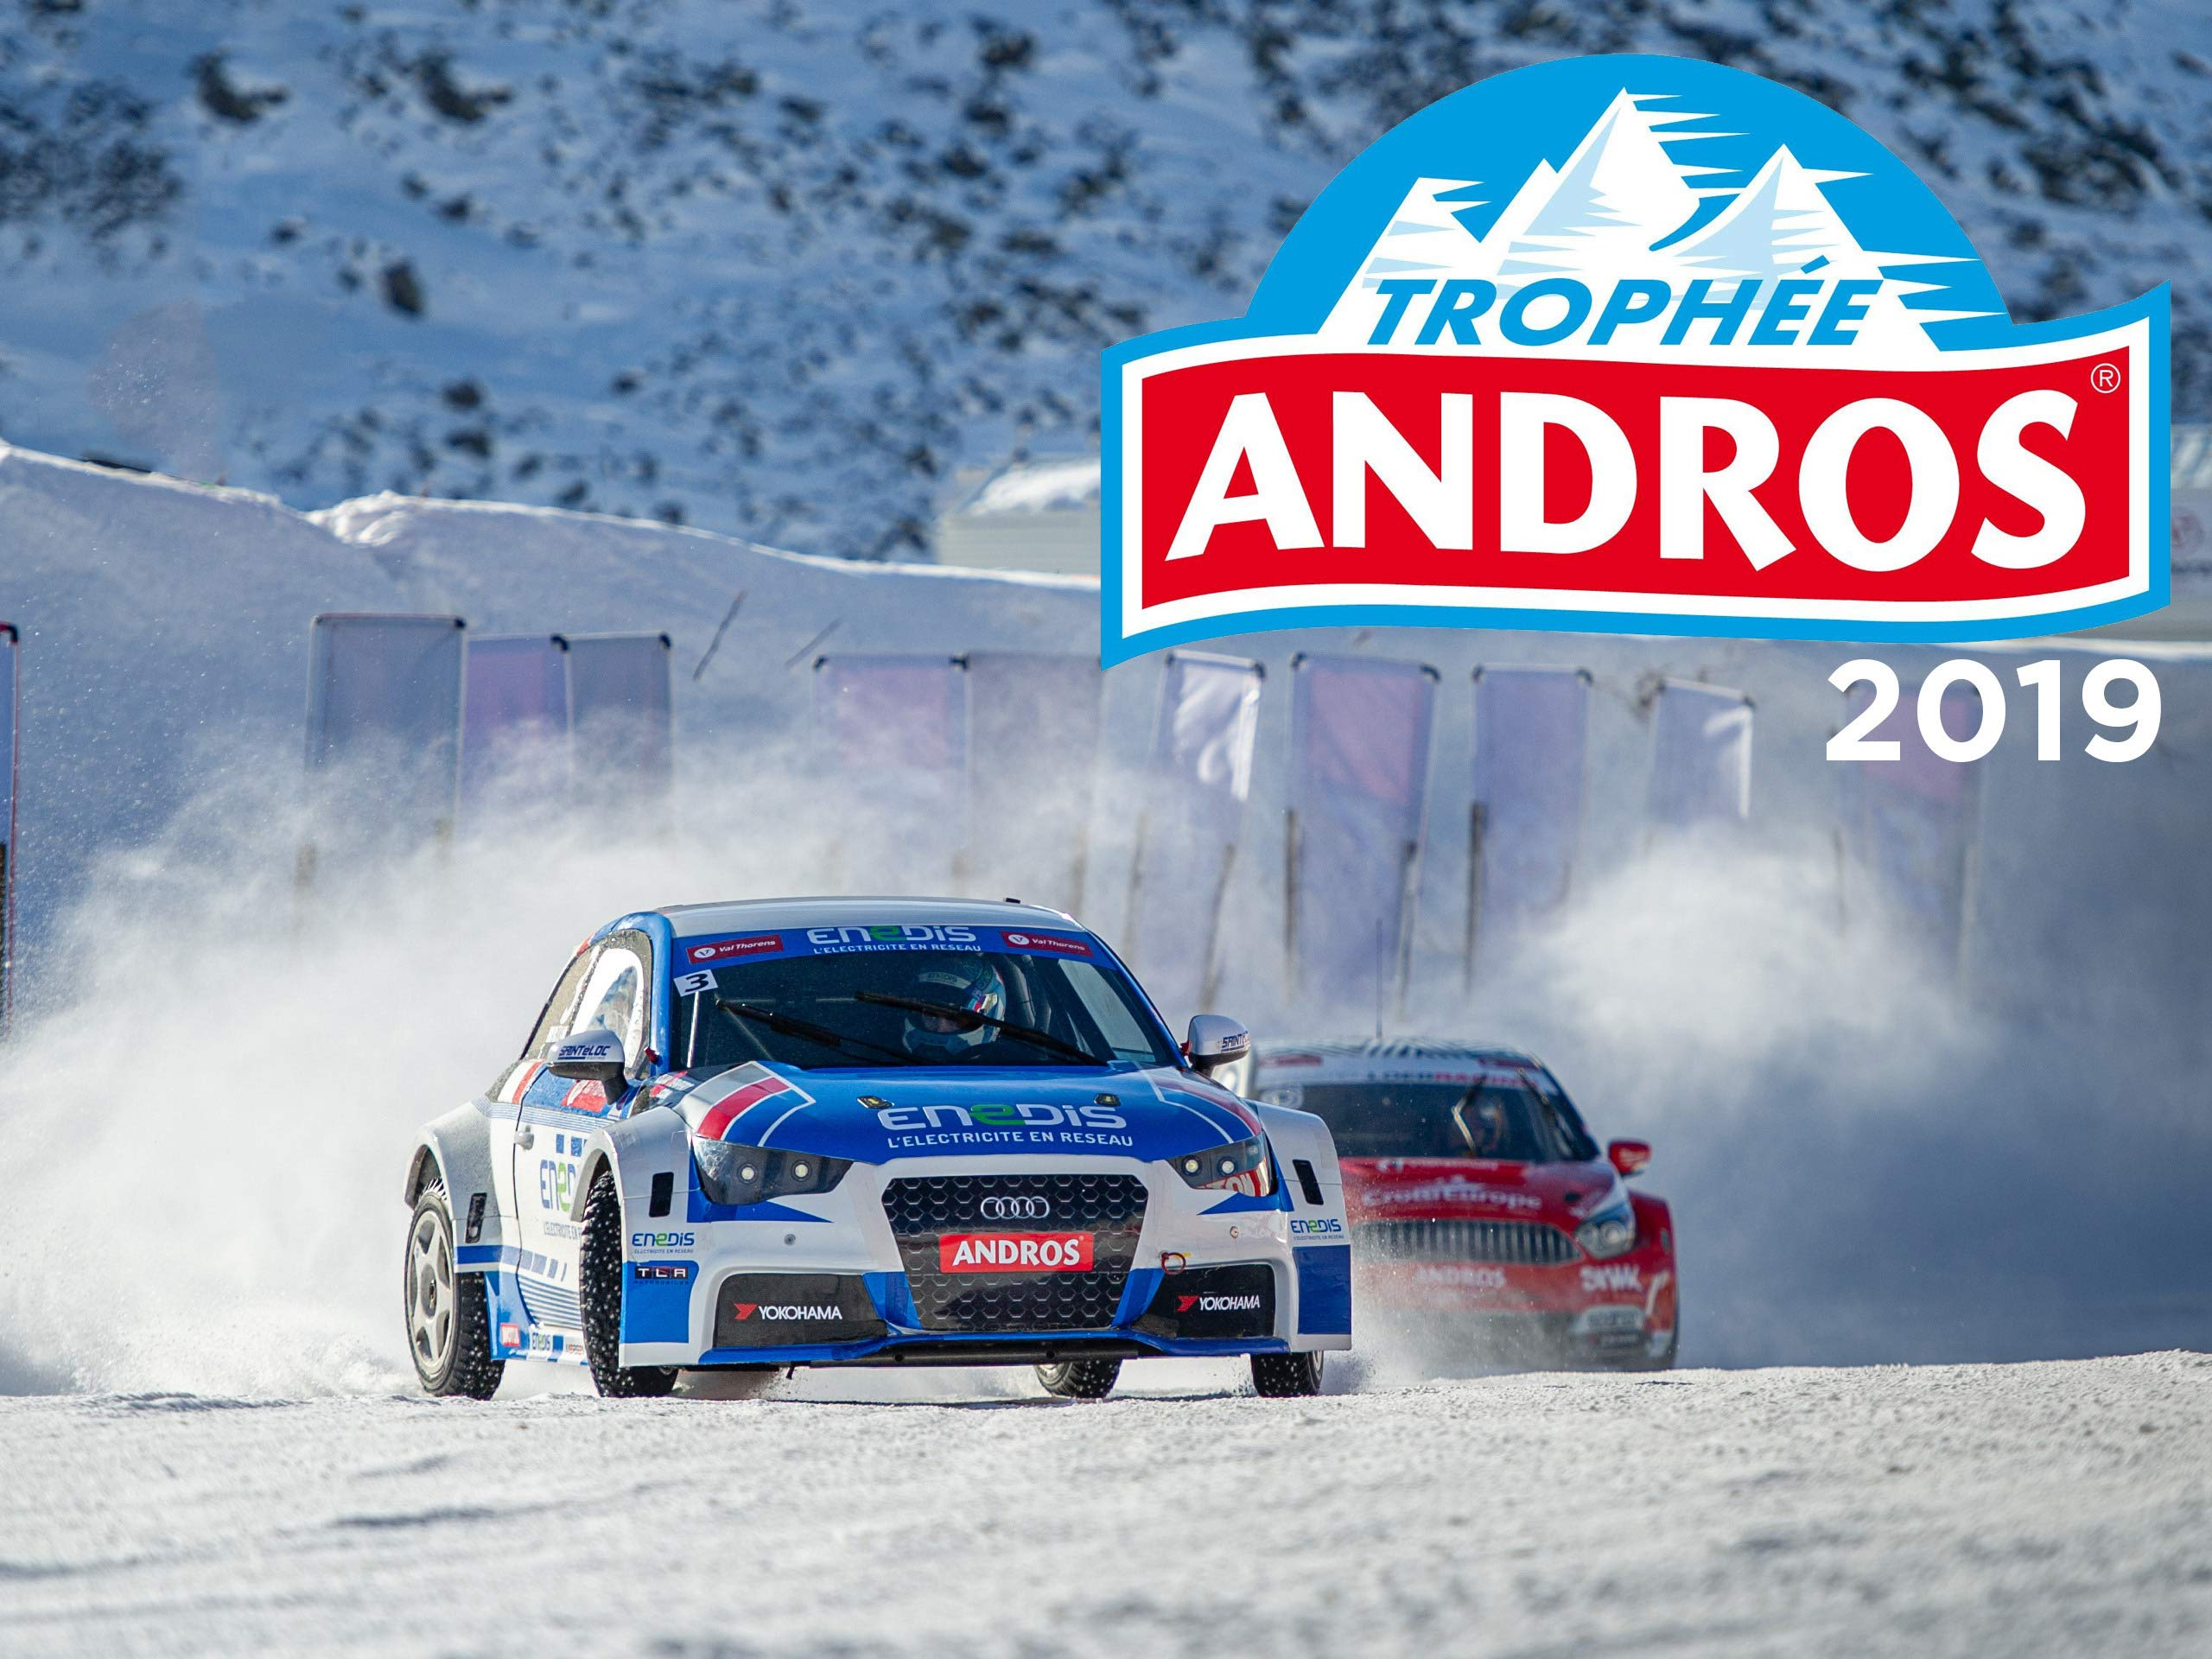 Andros Trophy 2020 on Amazon Prime Video UK